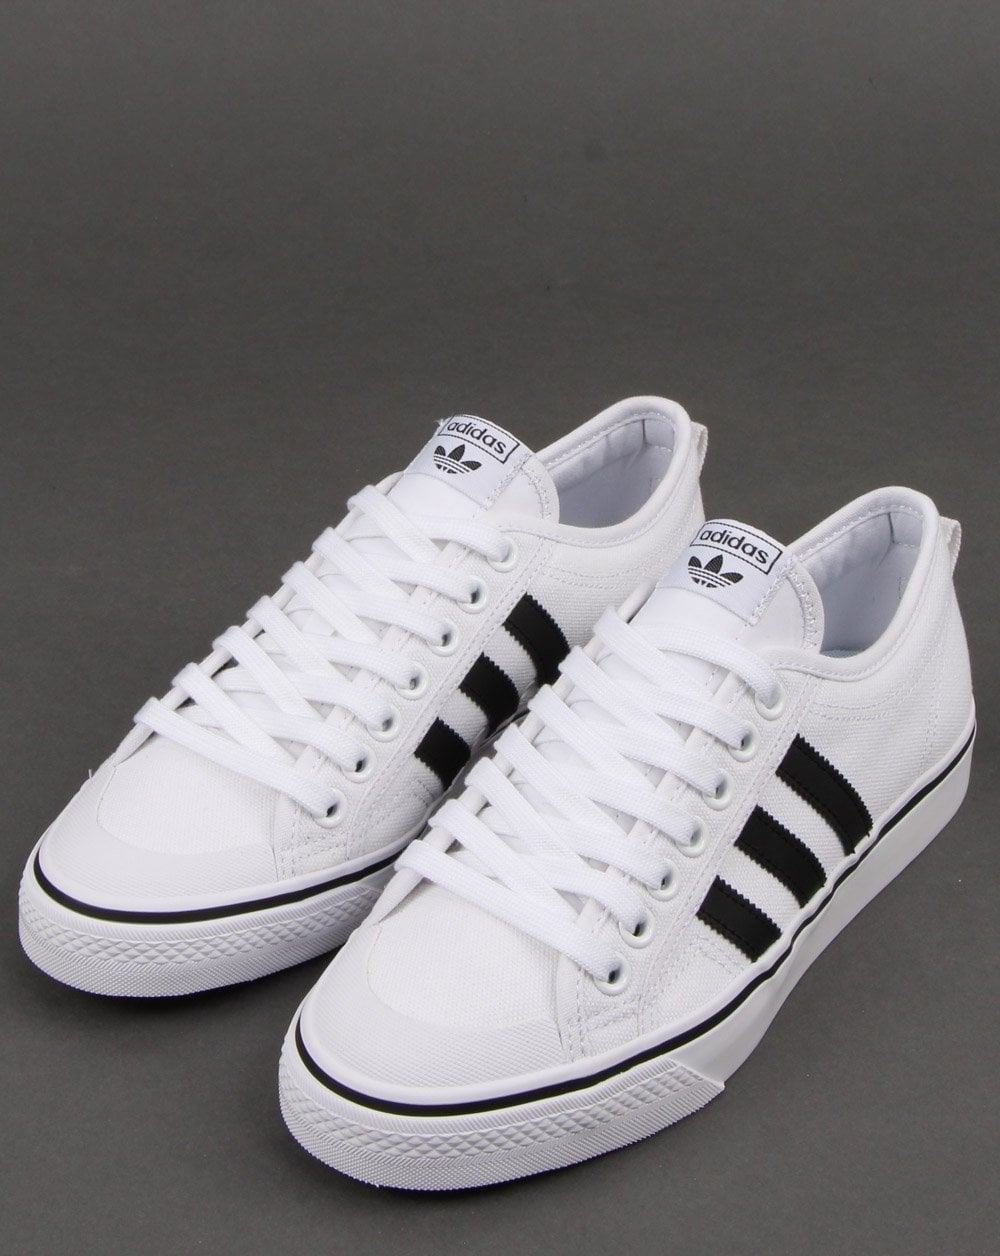 Adidas Nizza Trainers Whiteblack